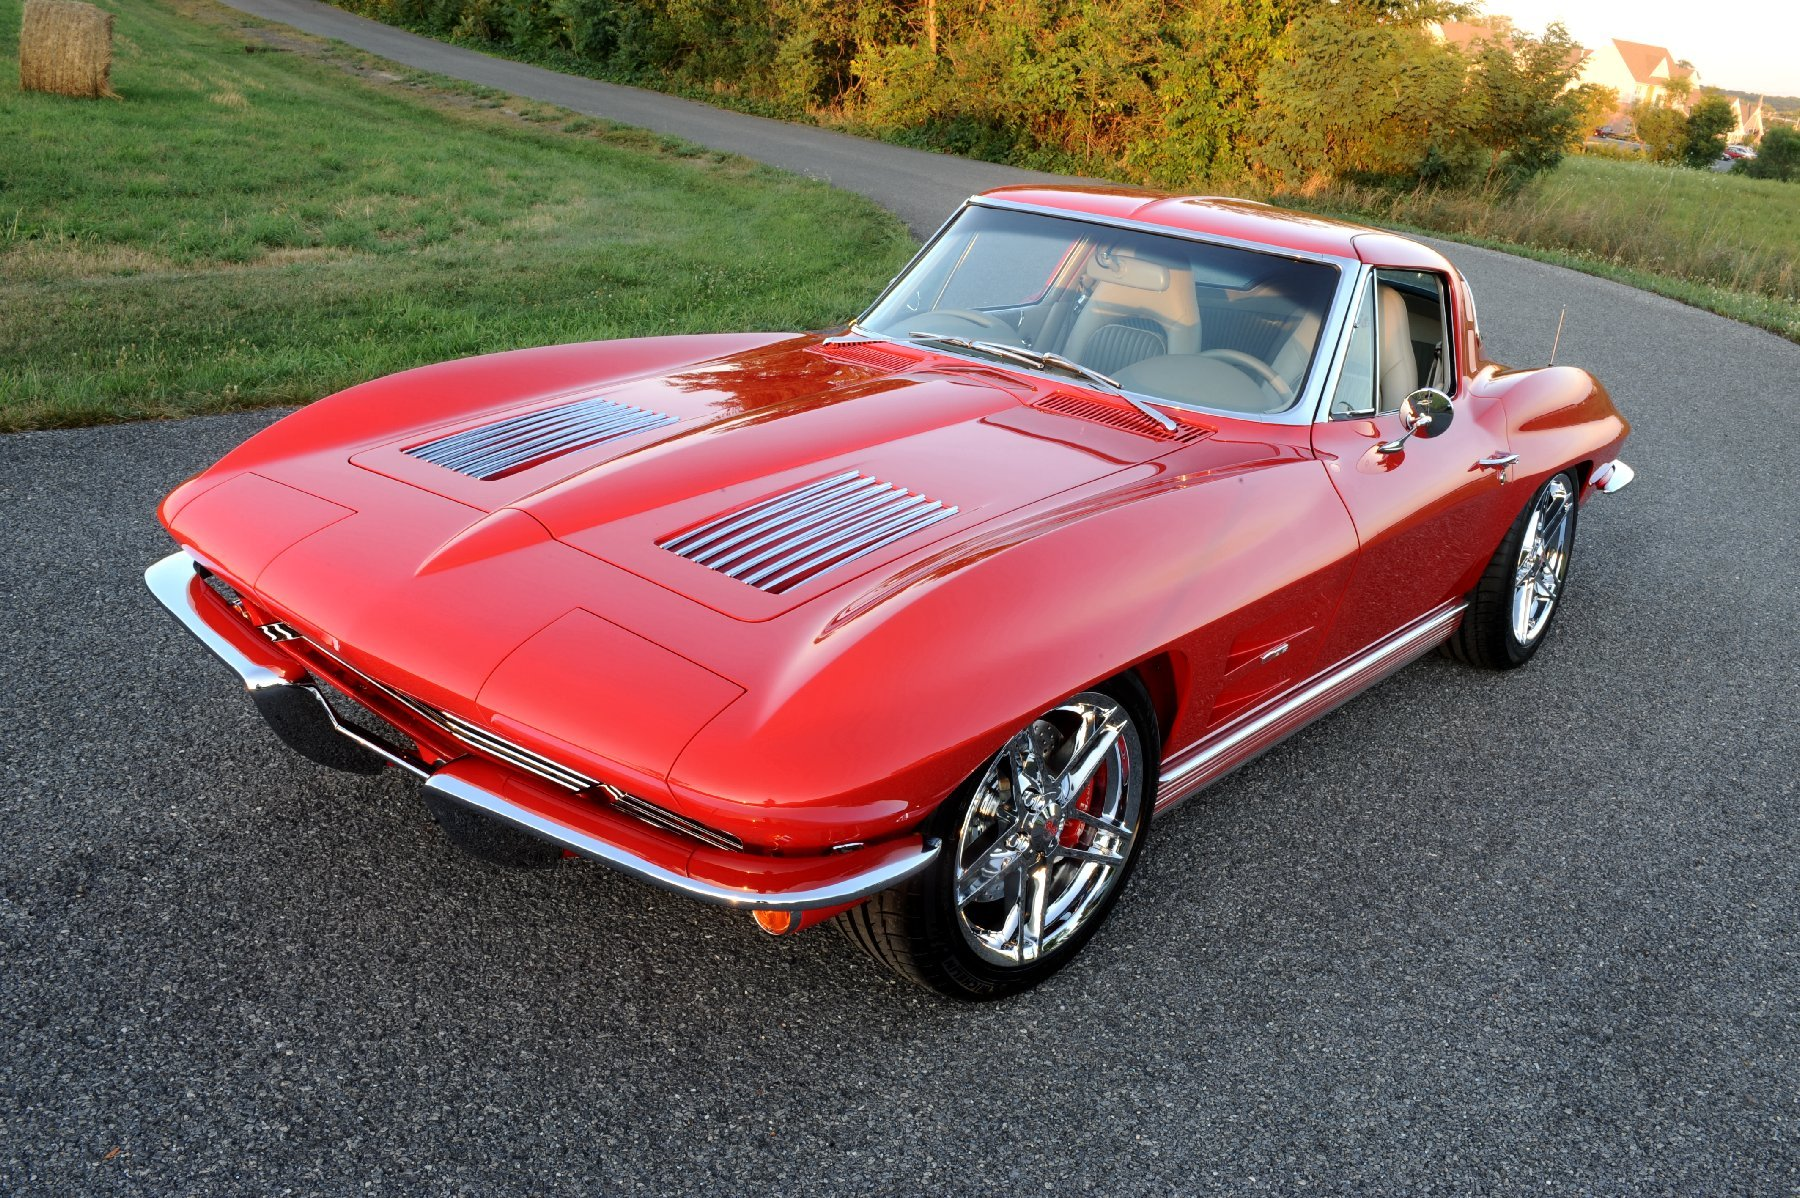 63 split window corvette project for sale autos post